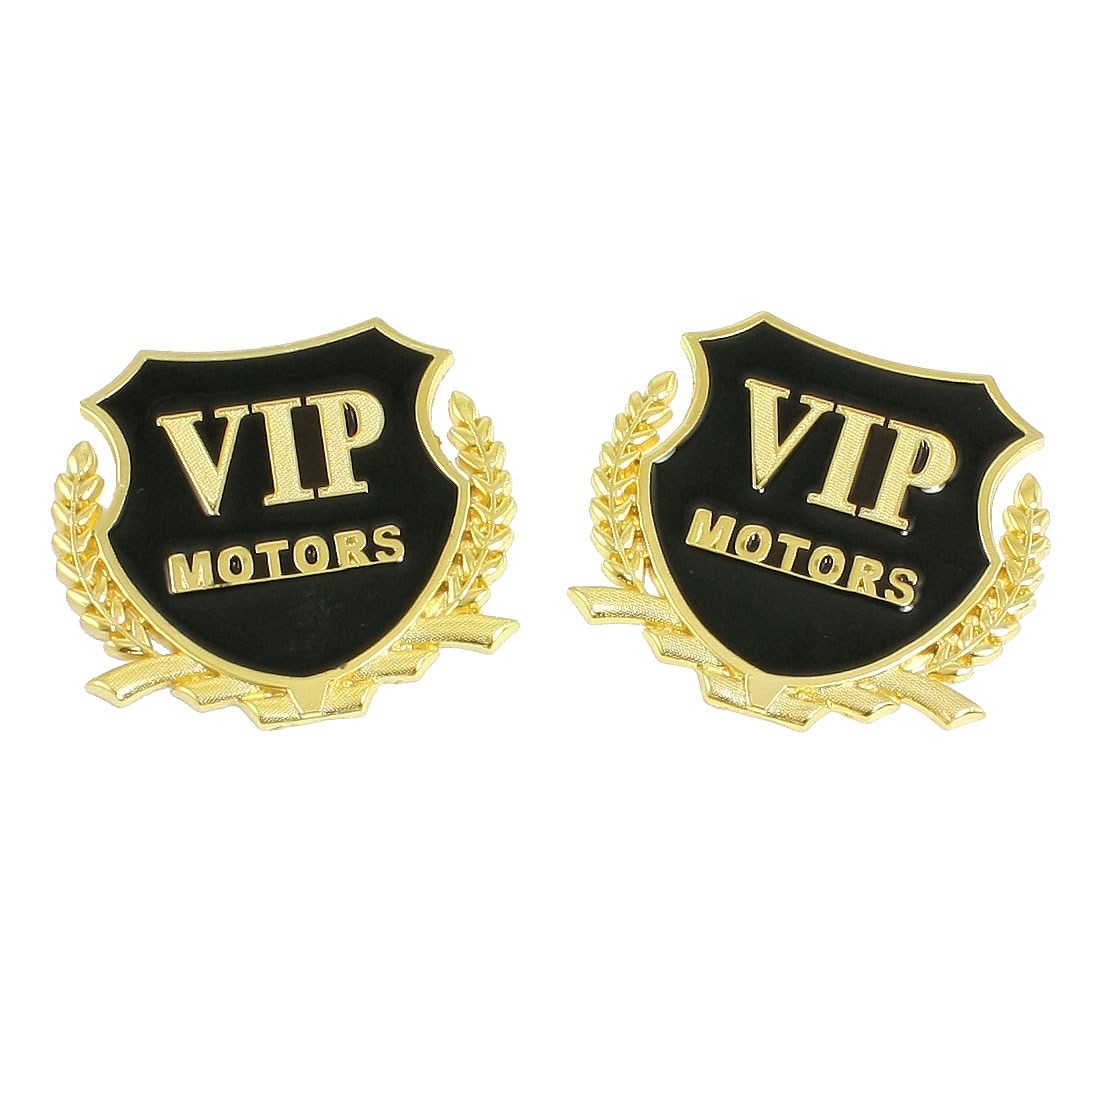 2 Pcs Car Decorative 3D VIP Letters Badge Emblem Decal Sticker Gold Tone Black